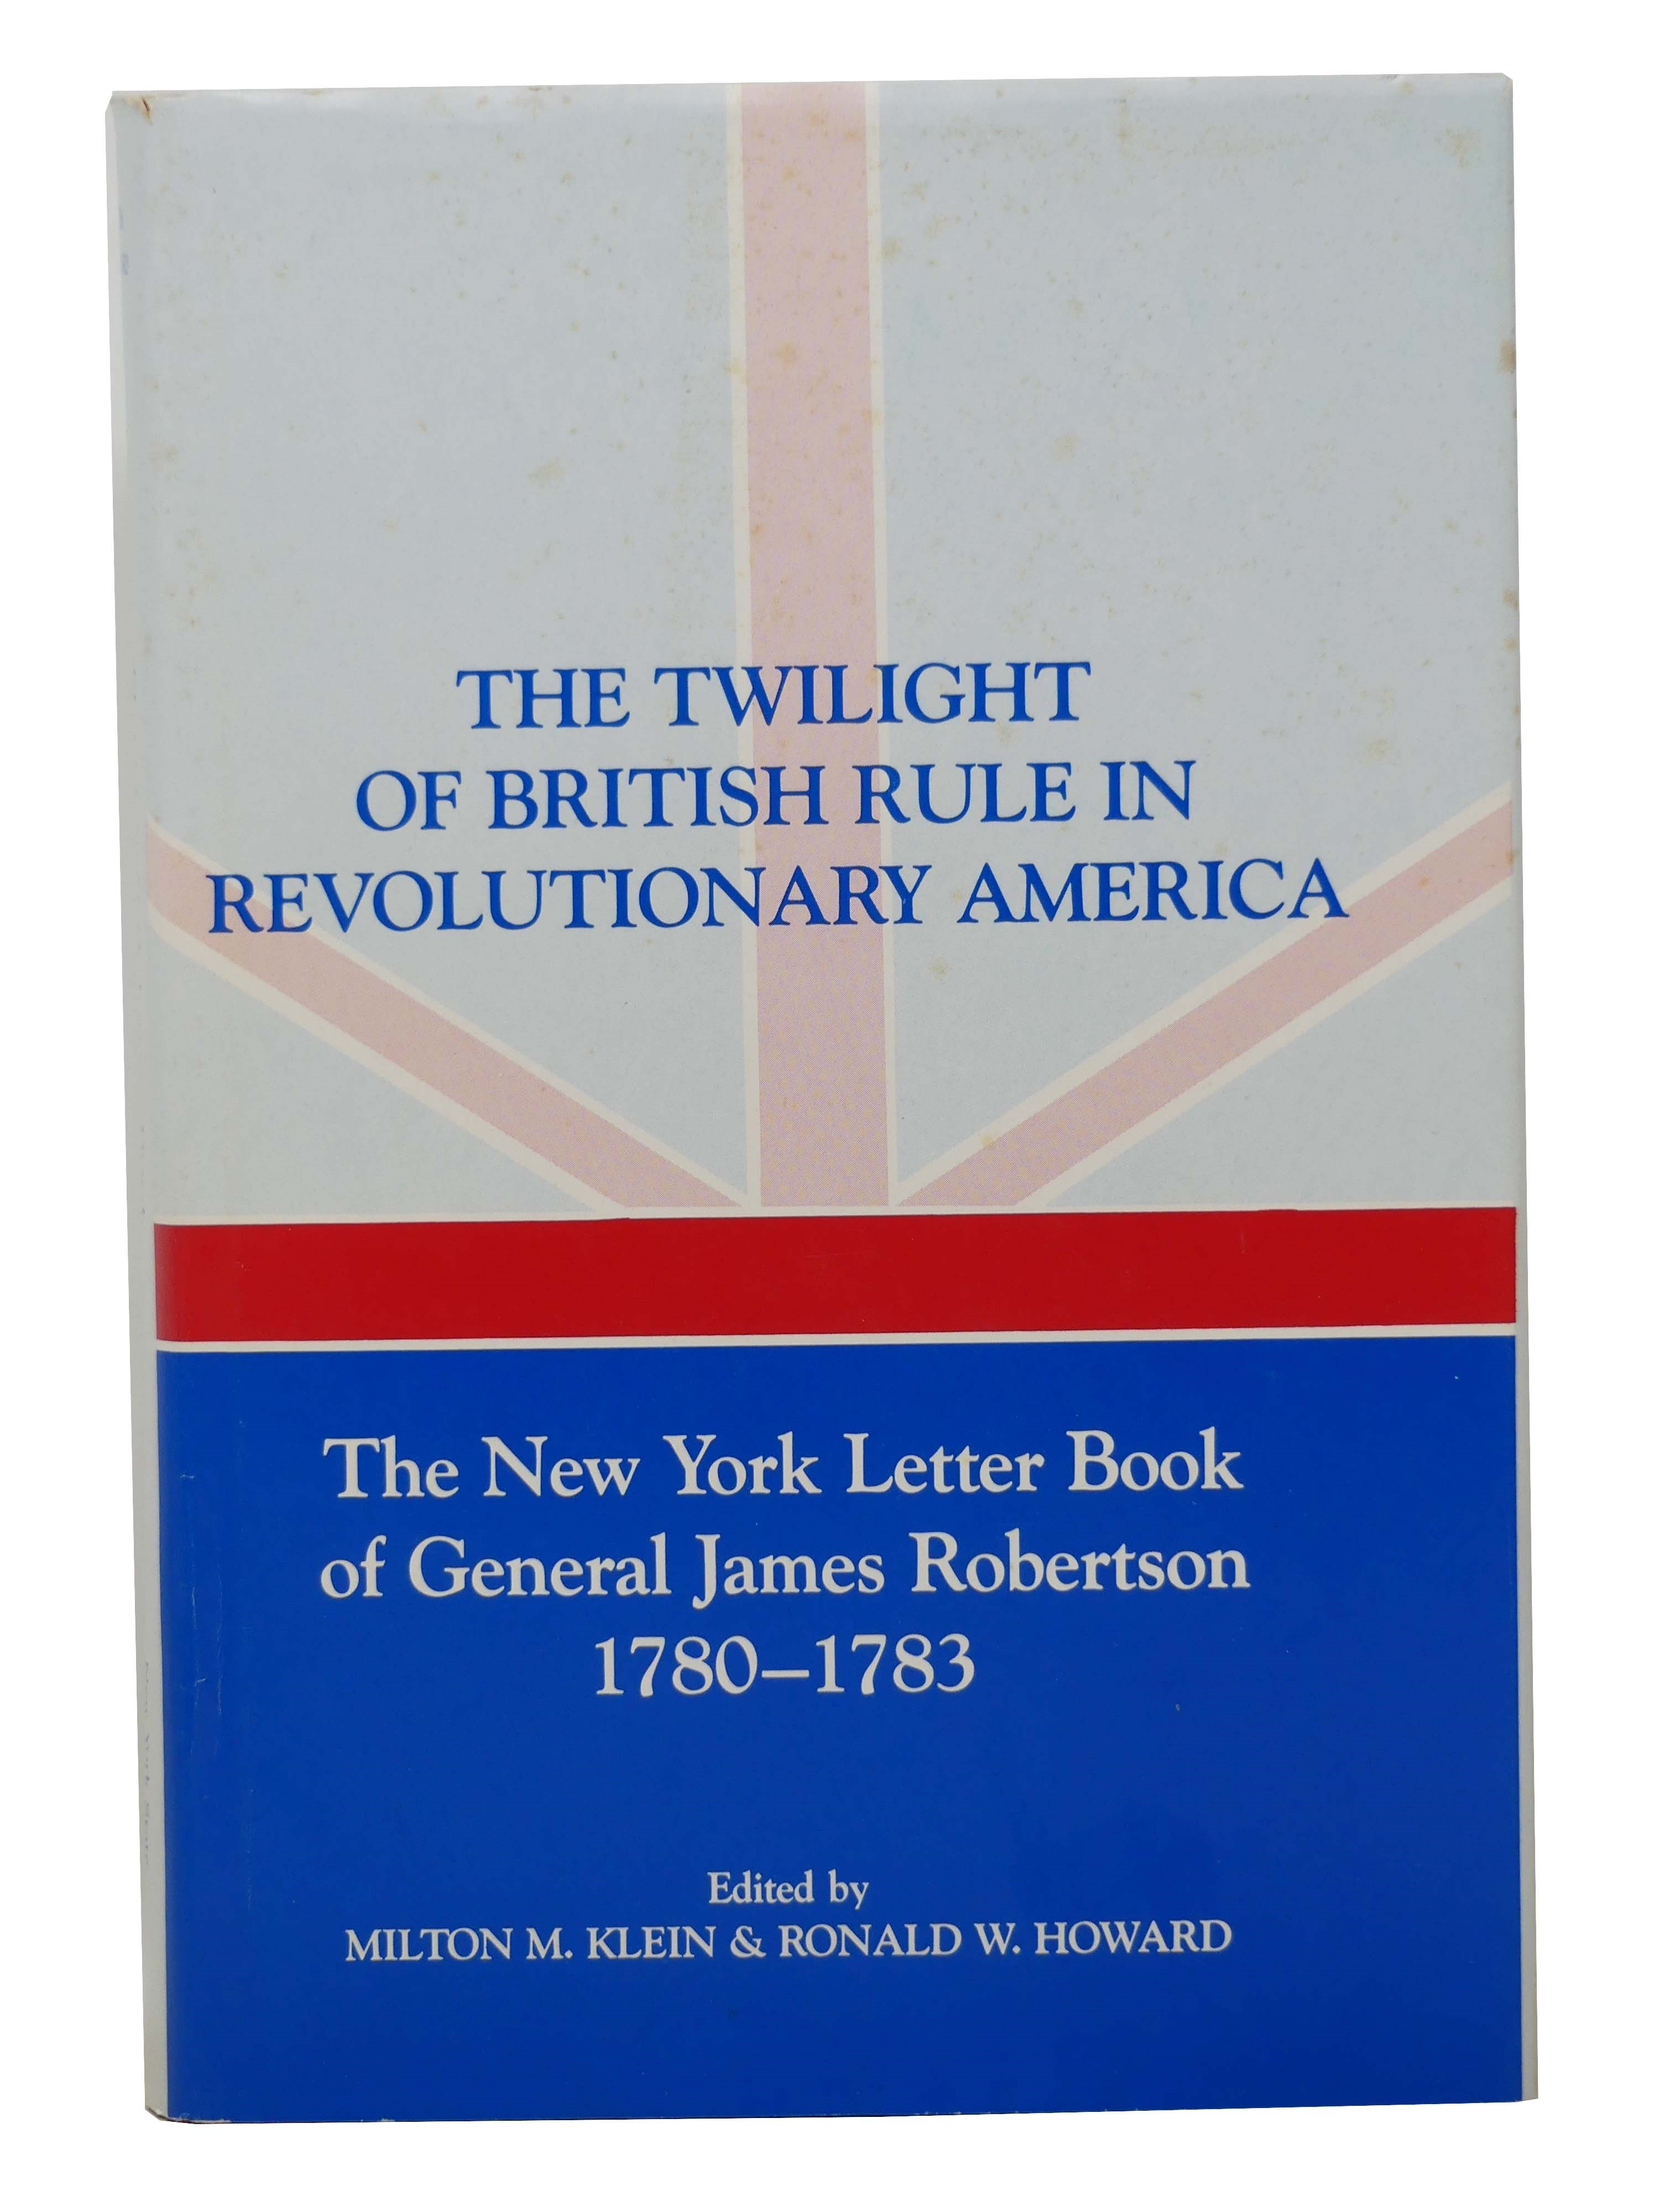 Image for The Twilight of British Rule in Revolutionary America: The New York Letter Book of General James Robertson, 1780-1783